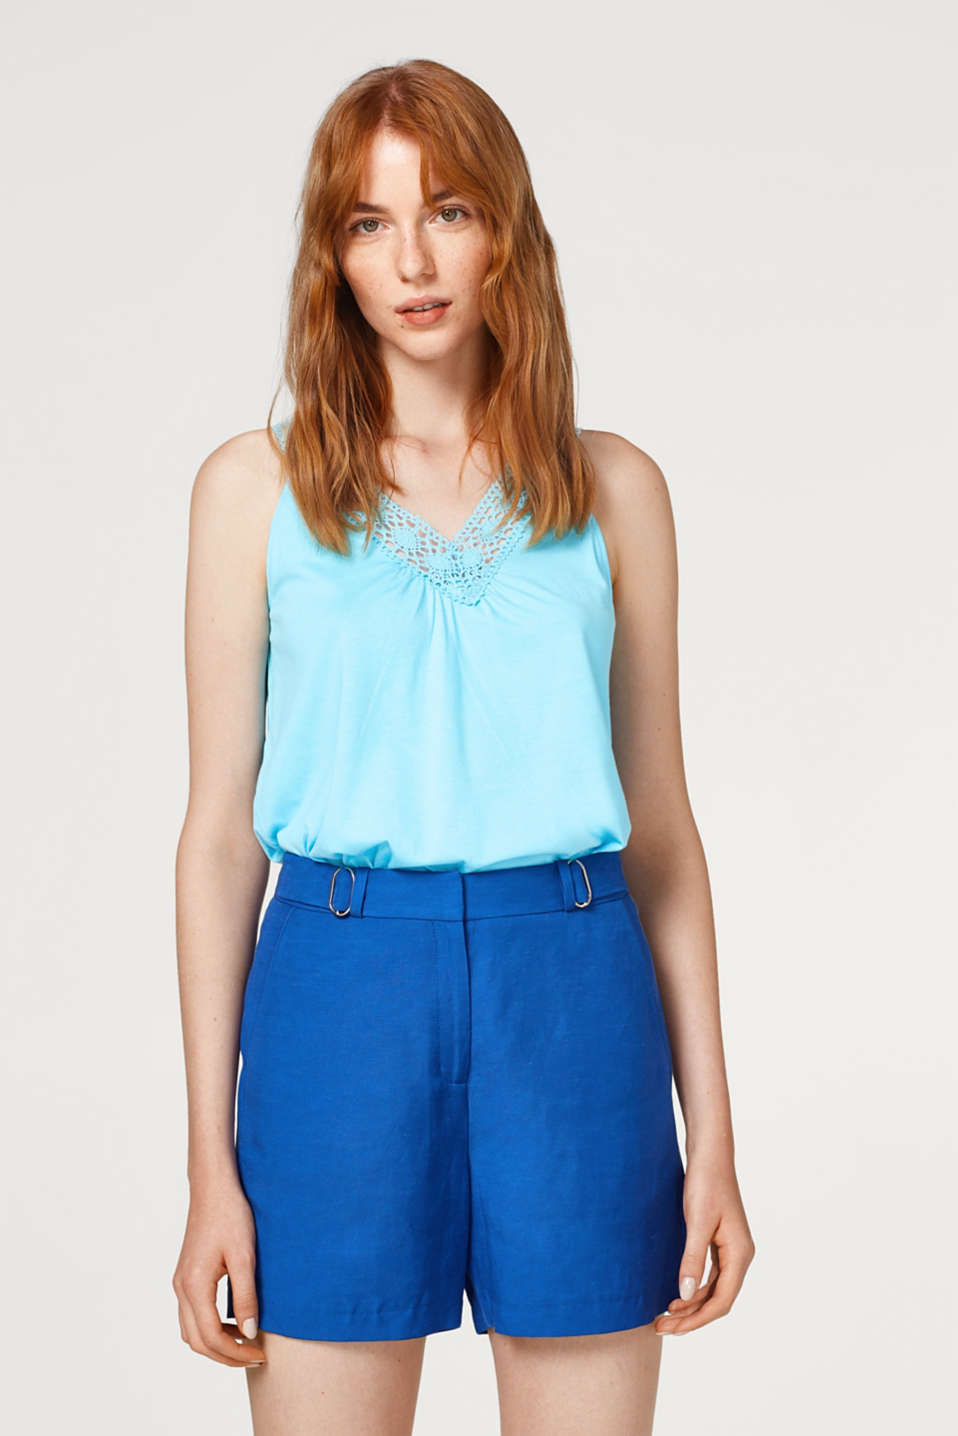 Esprit - Jersey top with crocheted lace details